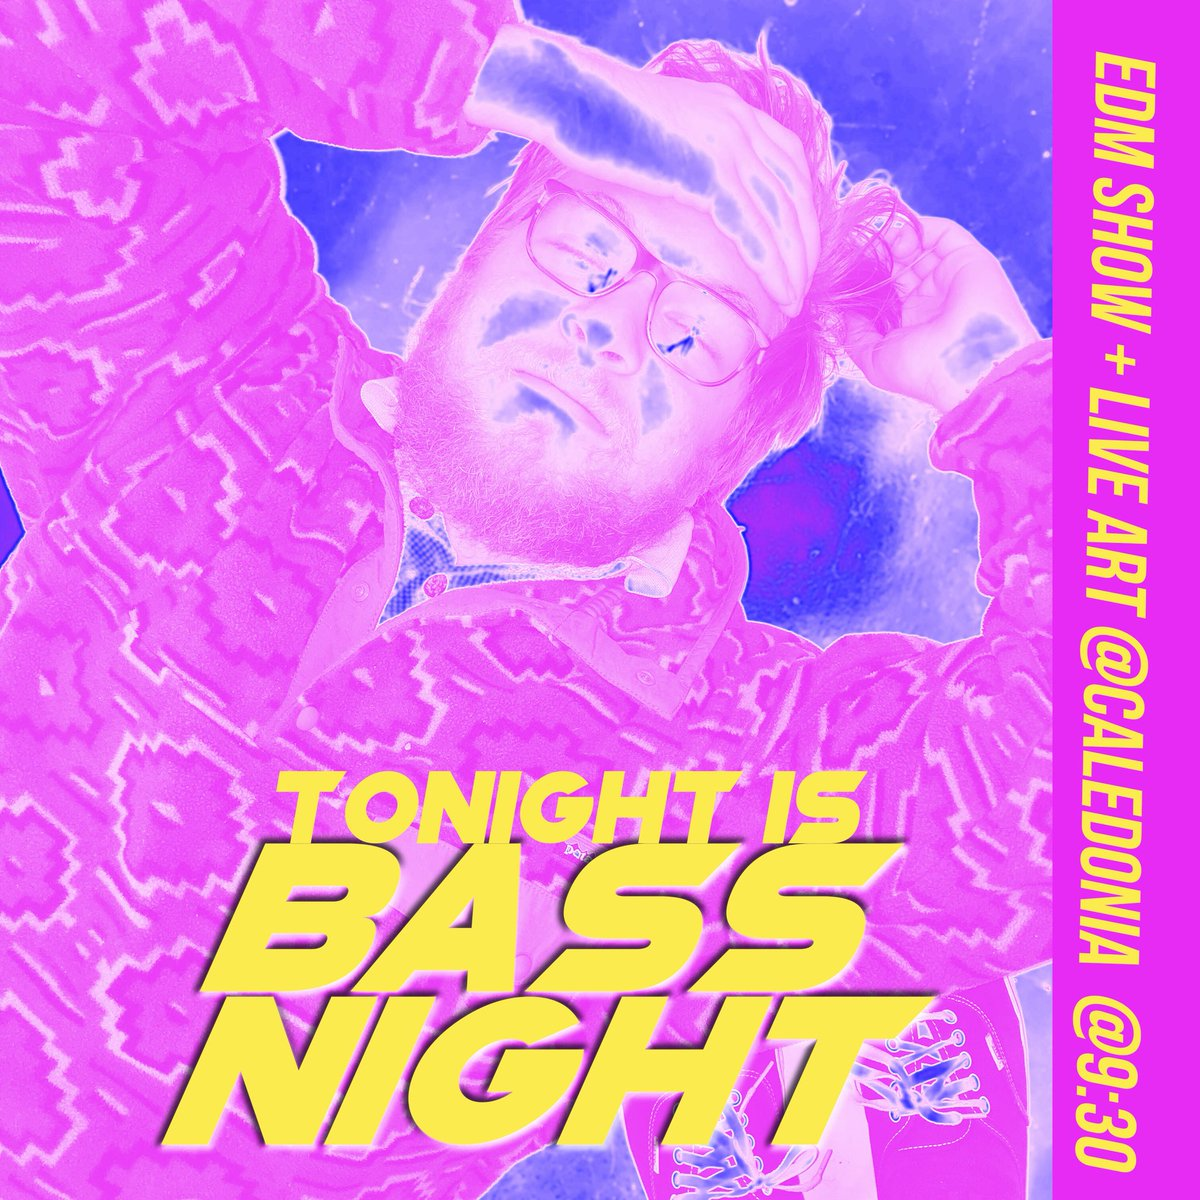 TONIGHT!! Come get trippy with us #Athens!  <br>http://pic.twitter.com/7wzEvxB3R0